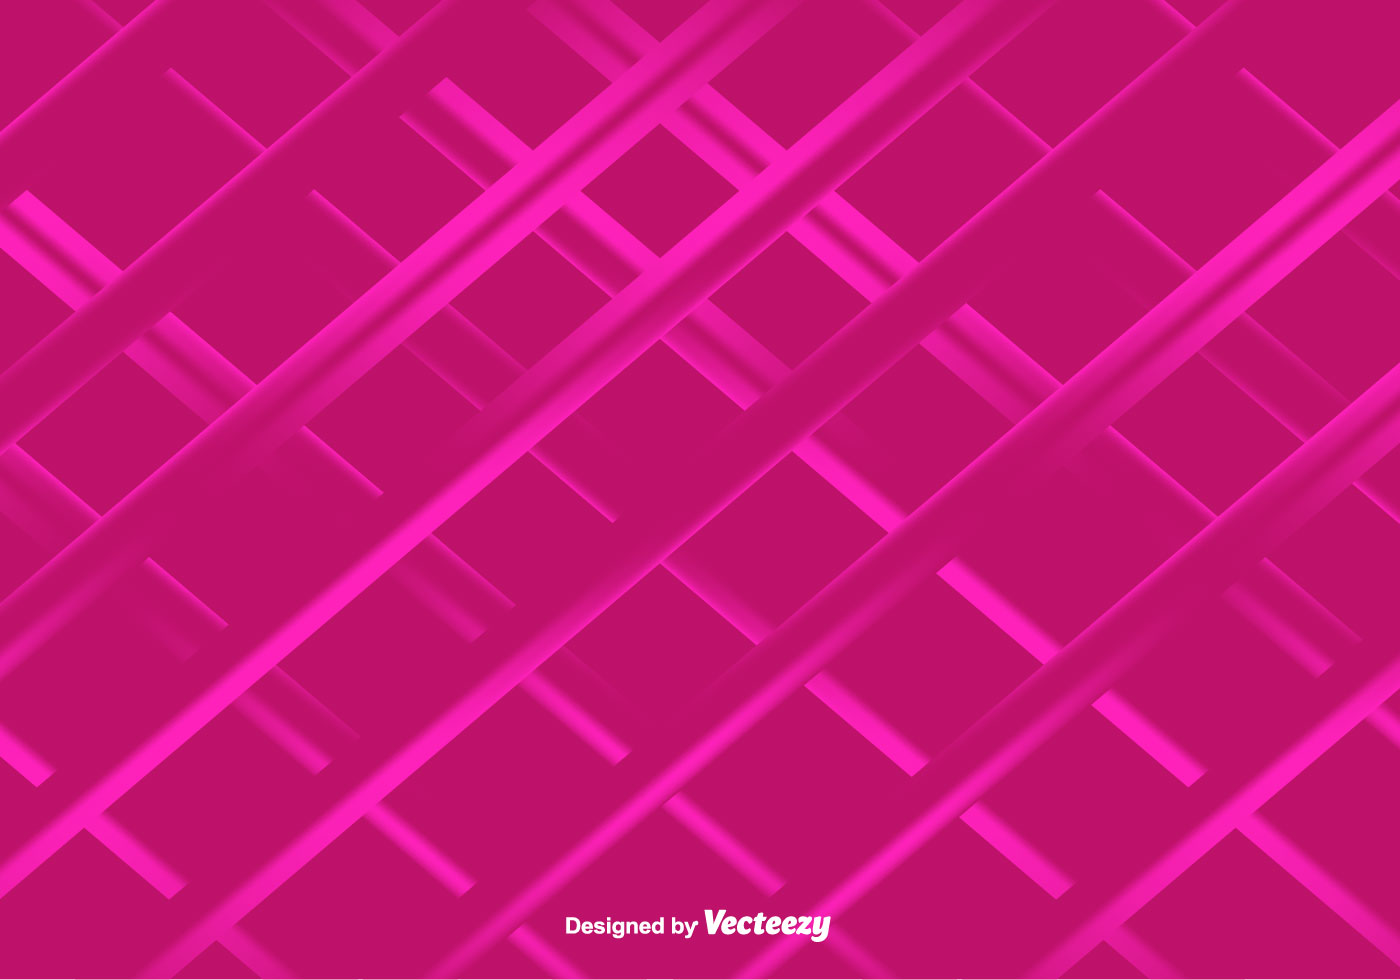 Pink Abstract Background Free Vector Art - (31392 Free ...